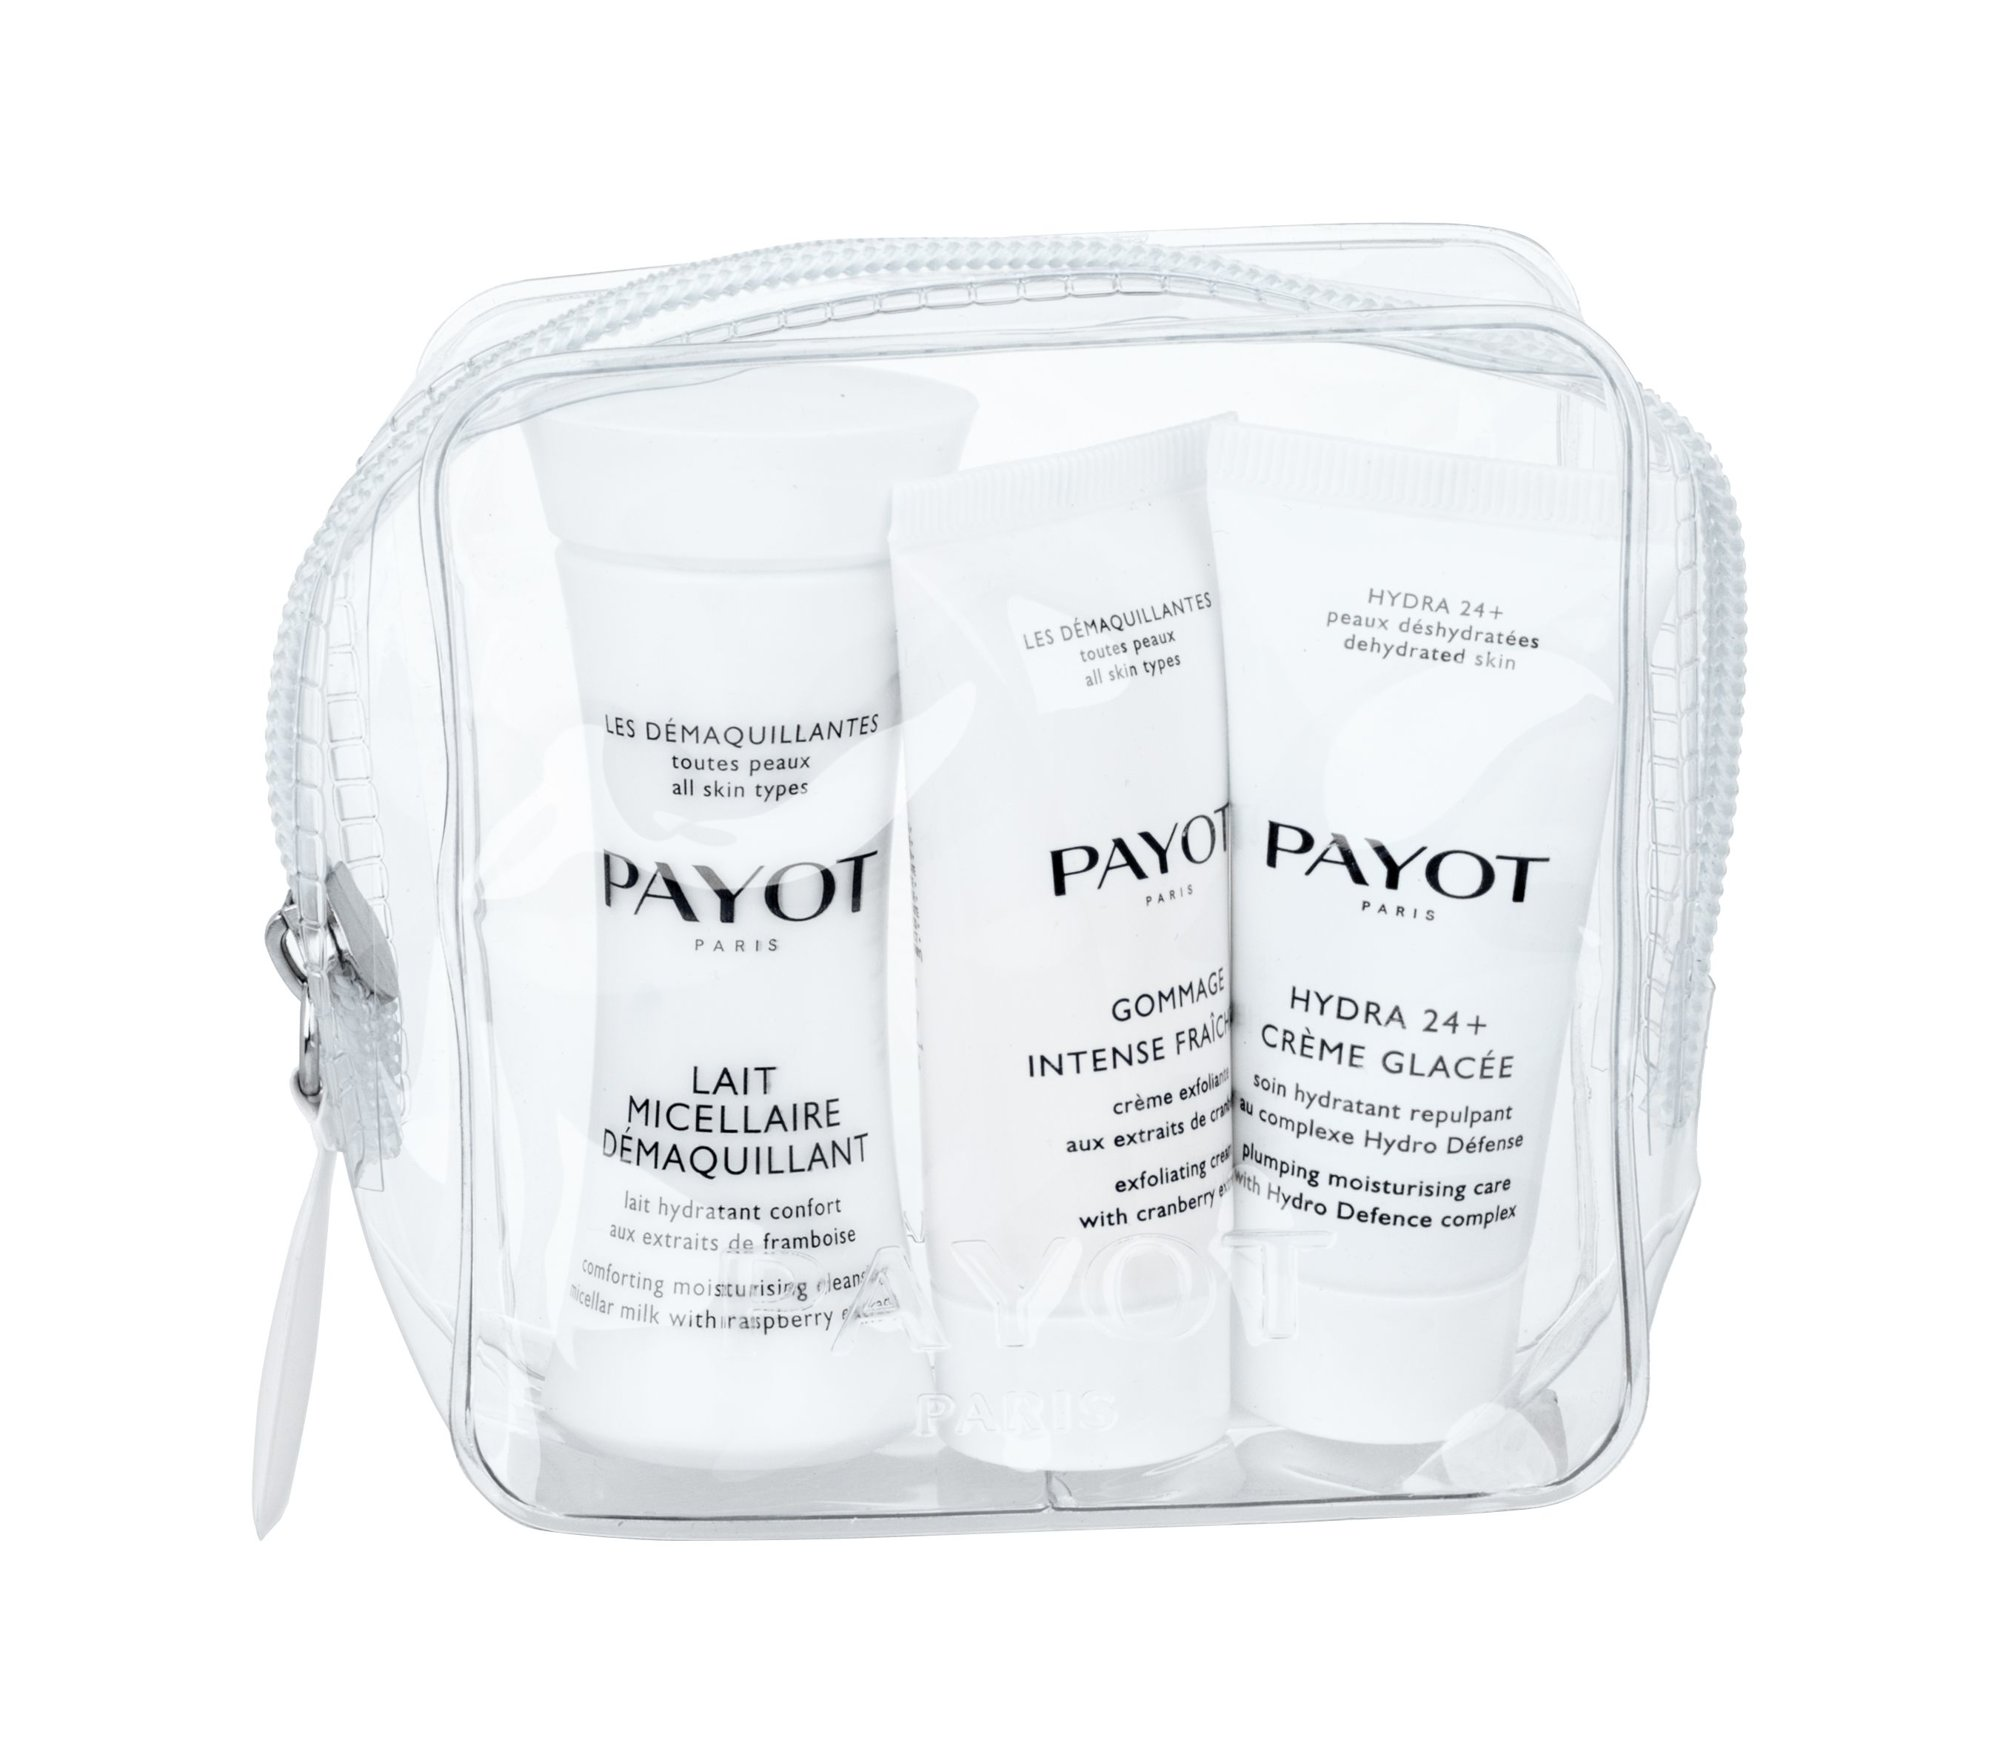 PAYOT Les Démaquillantes Cosmetic 30ml